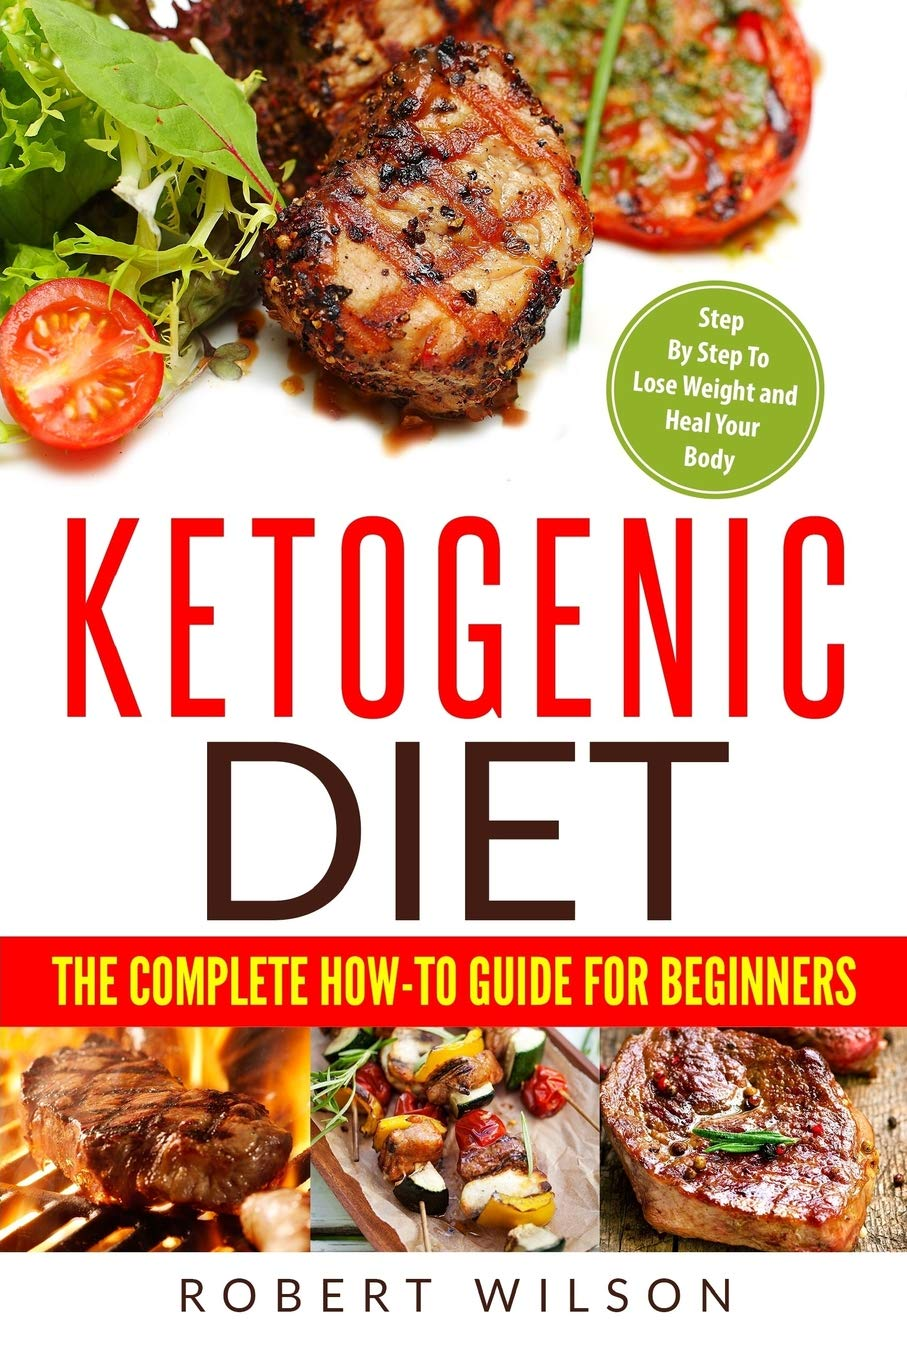 Ketogenic Diet: The Complete How-To Guide For Beginners: Ketogenic Diet For Beginners: Step By Step To Lose Weight And Heal Your Body (Volume 1) pdf epub